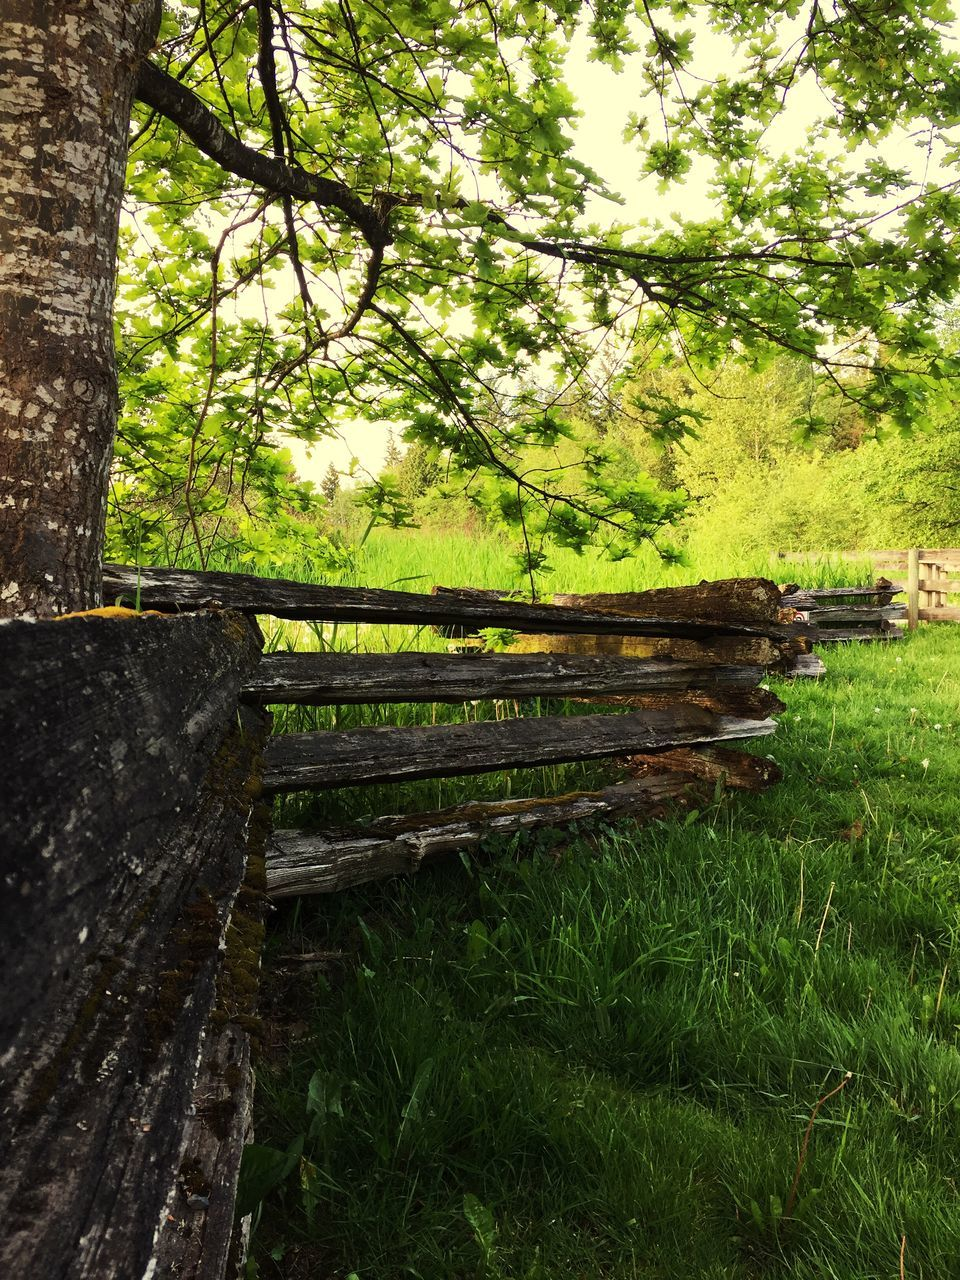 tree, green color, no people, grass, growth, day, nature, outdoors, beauty in nature, tranquility, scenics